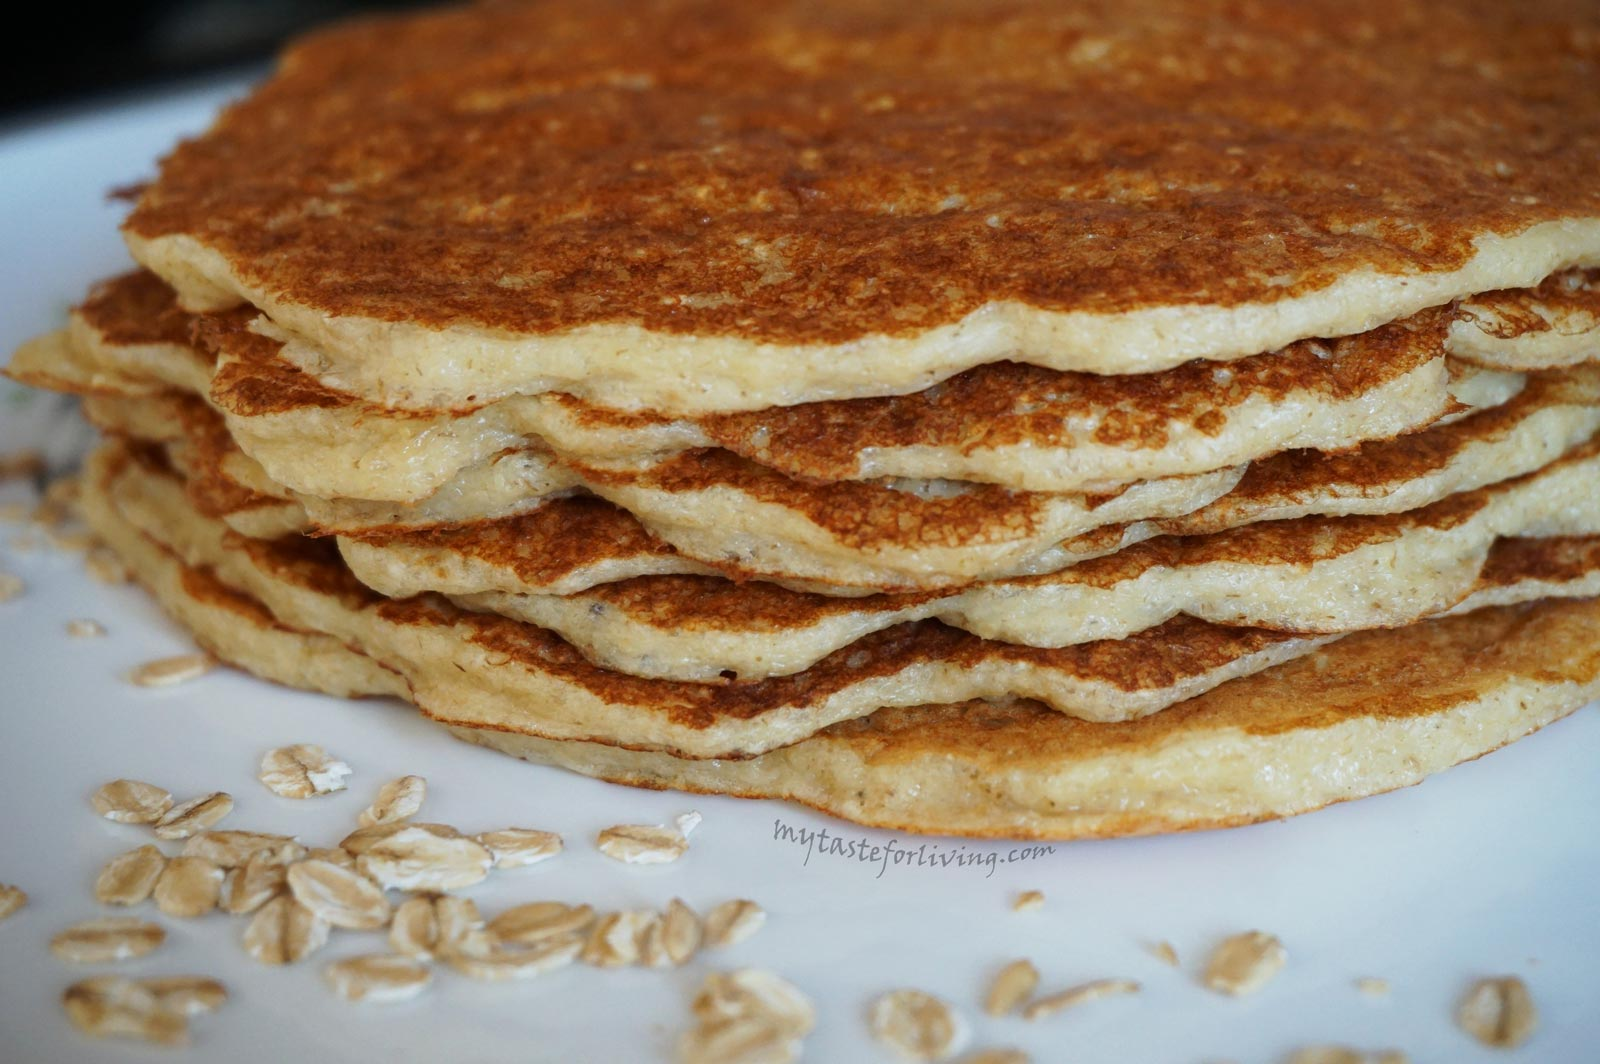 Delicious, nutritious and healthy pancakes prepared with old fashioned rolled oats and skyr, without flour.